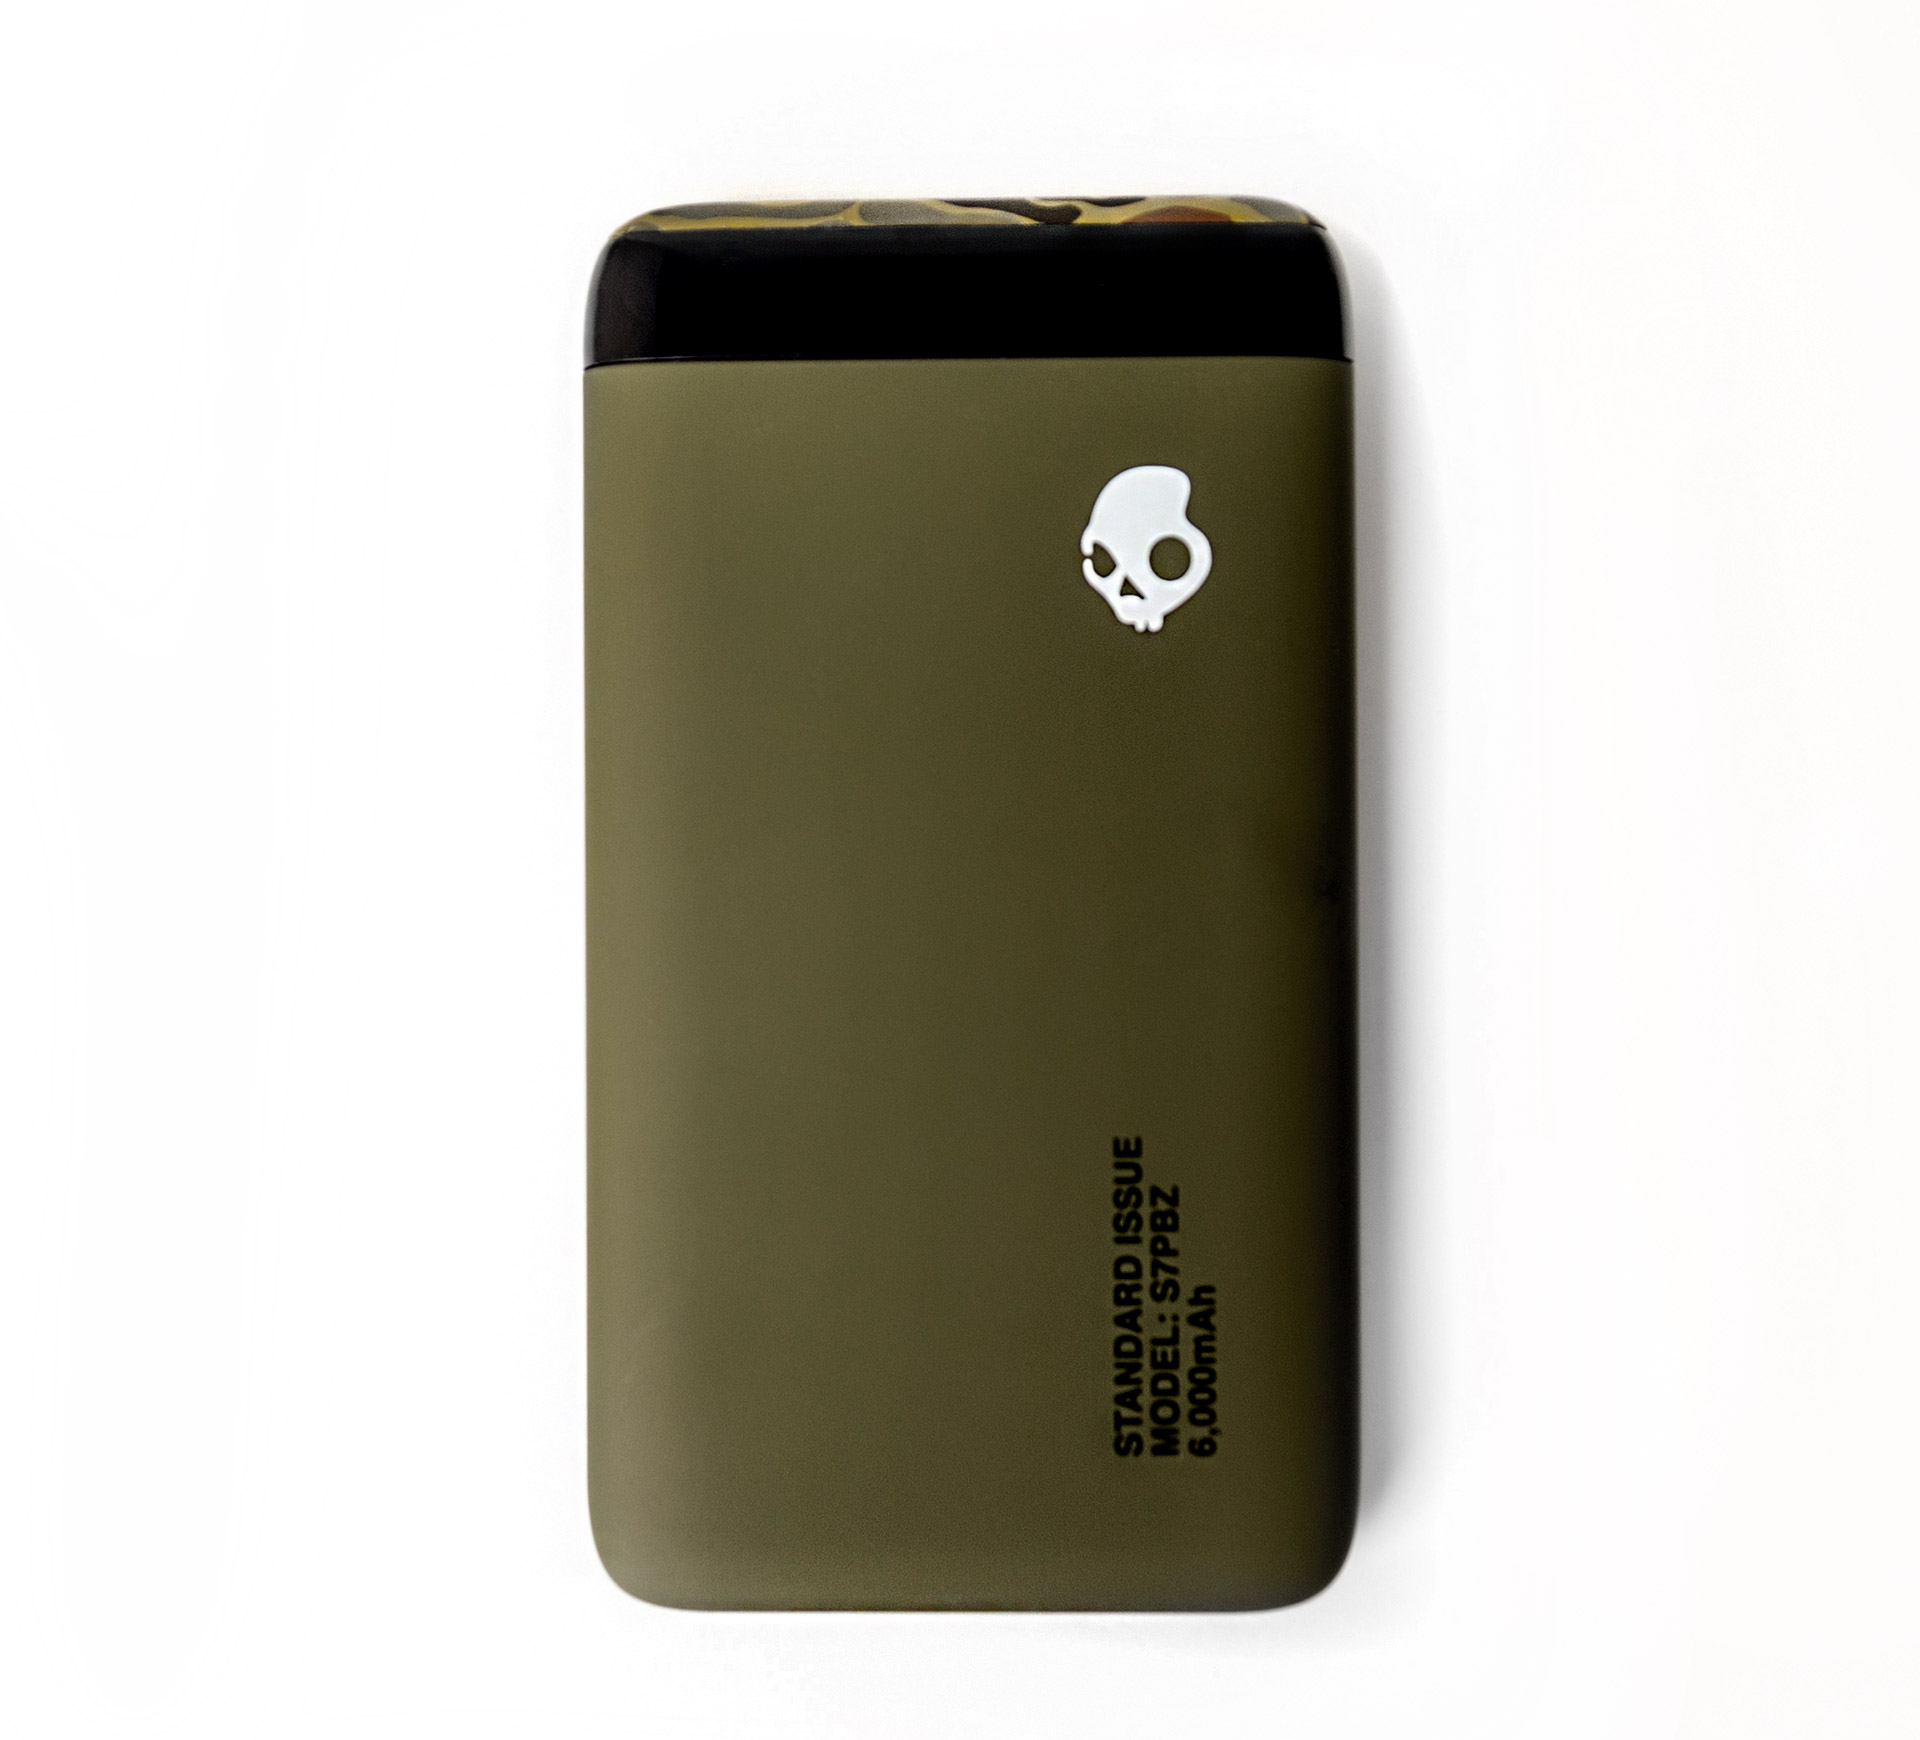 6fd6bc315dea2e Featuring a slim design with smooth edges and our unique colorways, Stash  is no bigger than most phones. It's a powerbank you can easily stash away  and ...